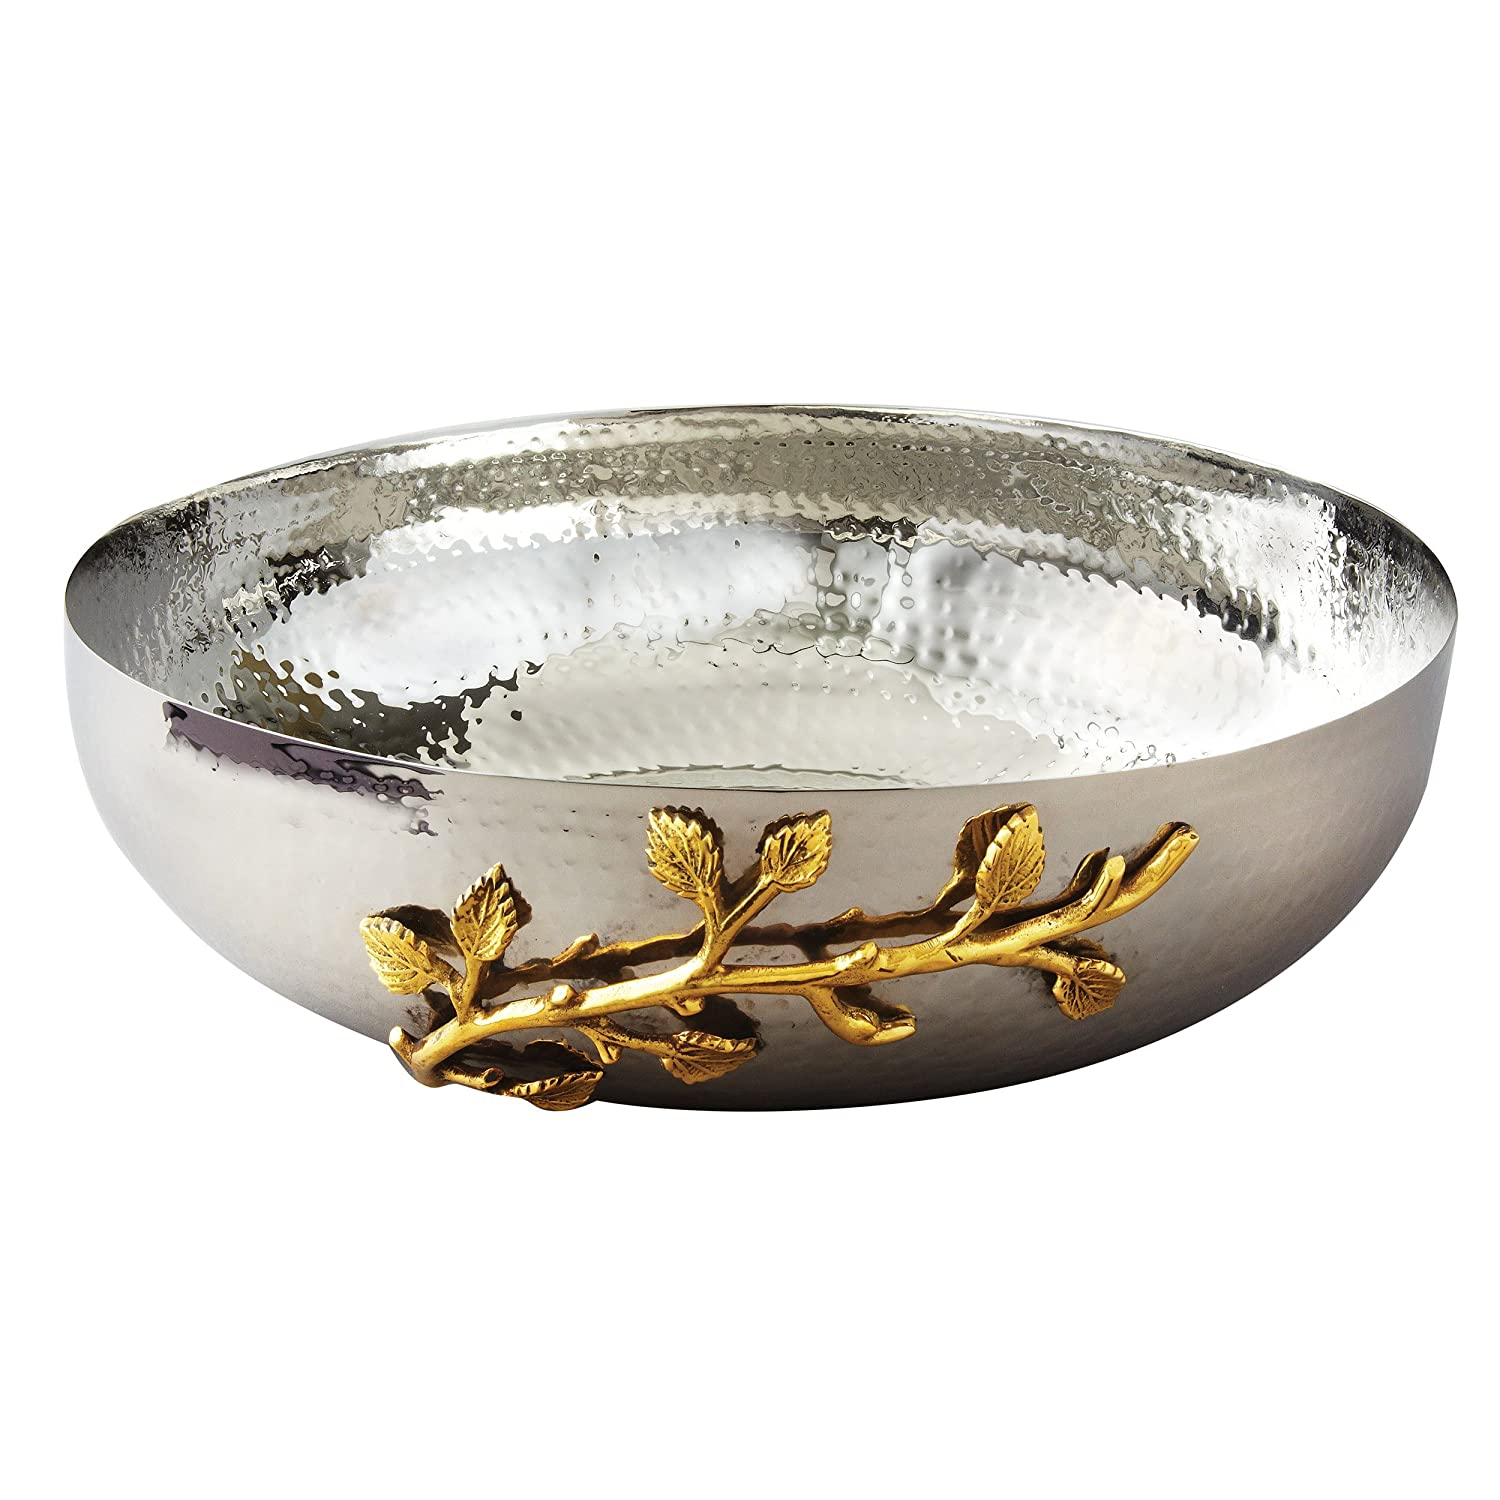 Elegance Golden Vine Hammered Salad Bowl, 12-Inch, Silver/Gold 70020